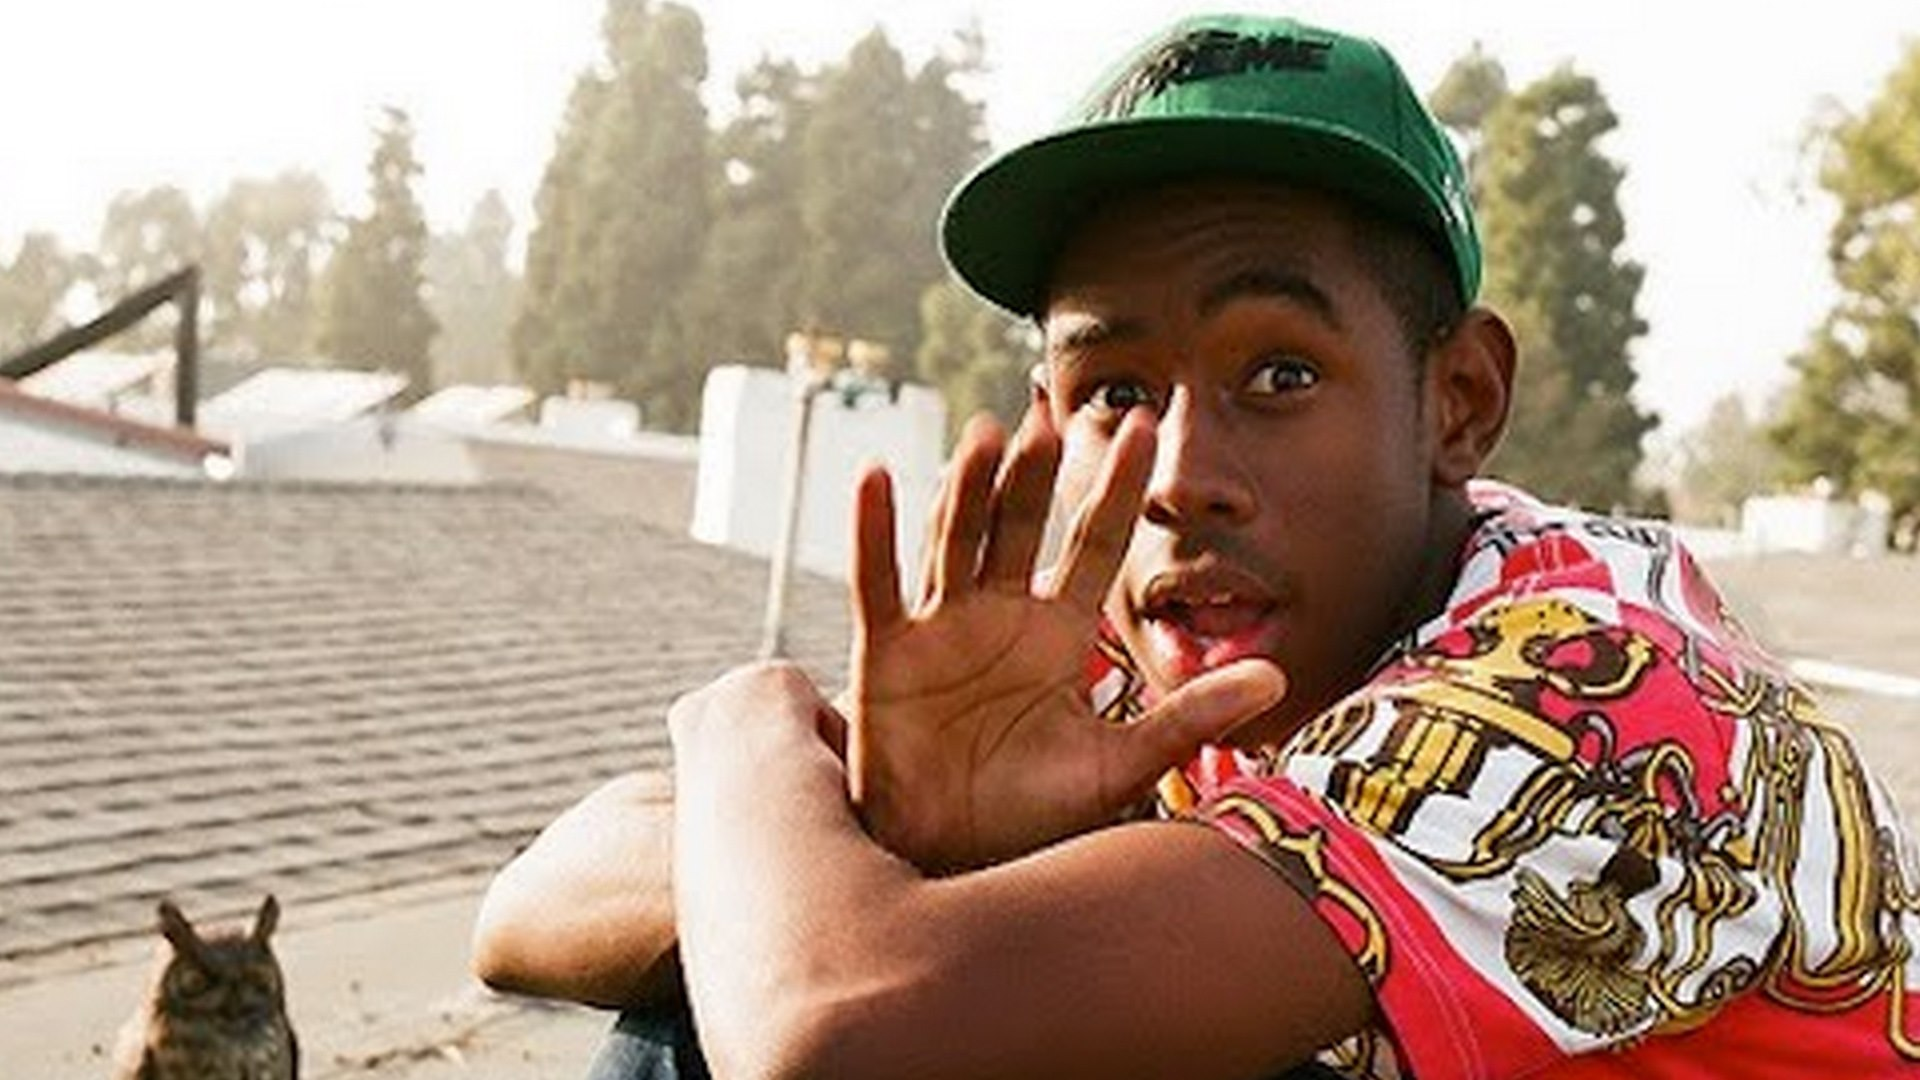 Free Download Tyler The Creator Hd 2 Rap Wallpapers 1920x1080